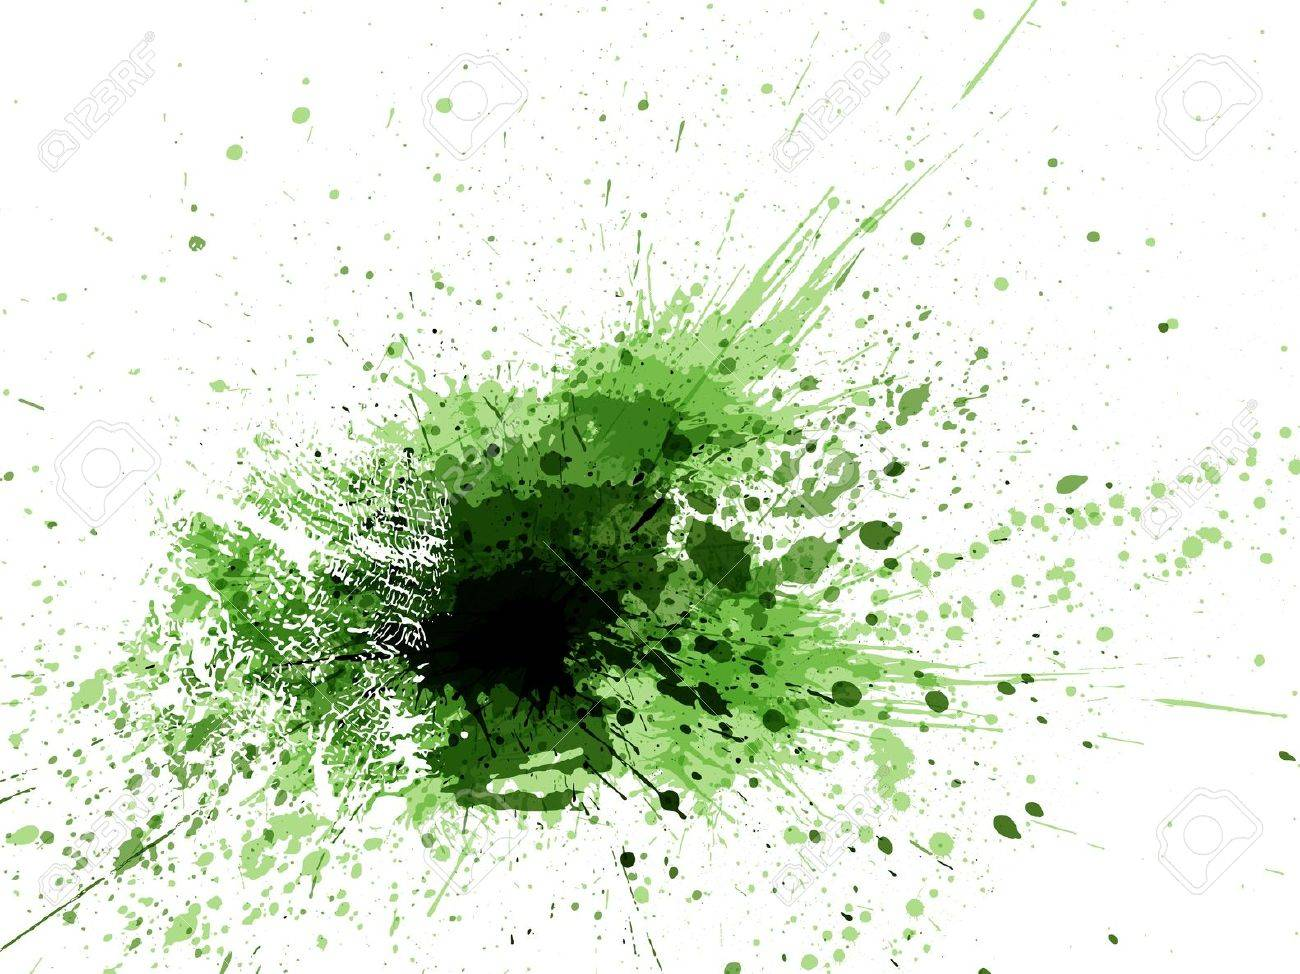 abstract grunge background, vector eps10 with transparency - 9344550